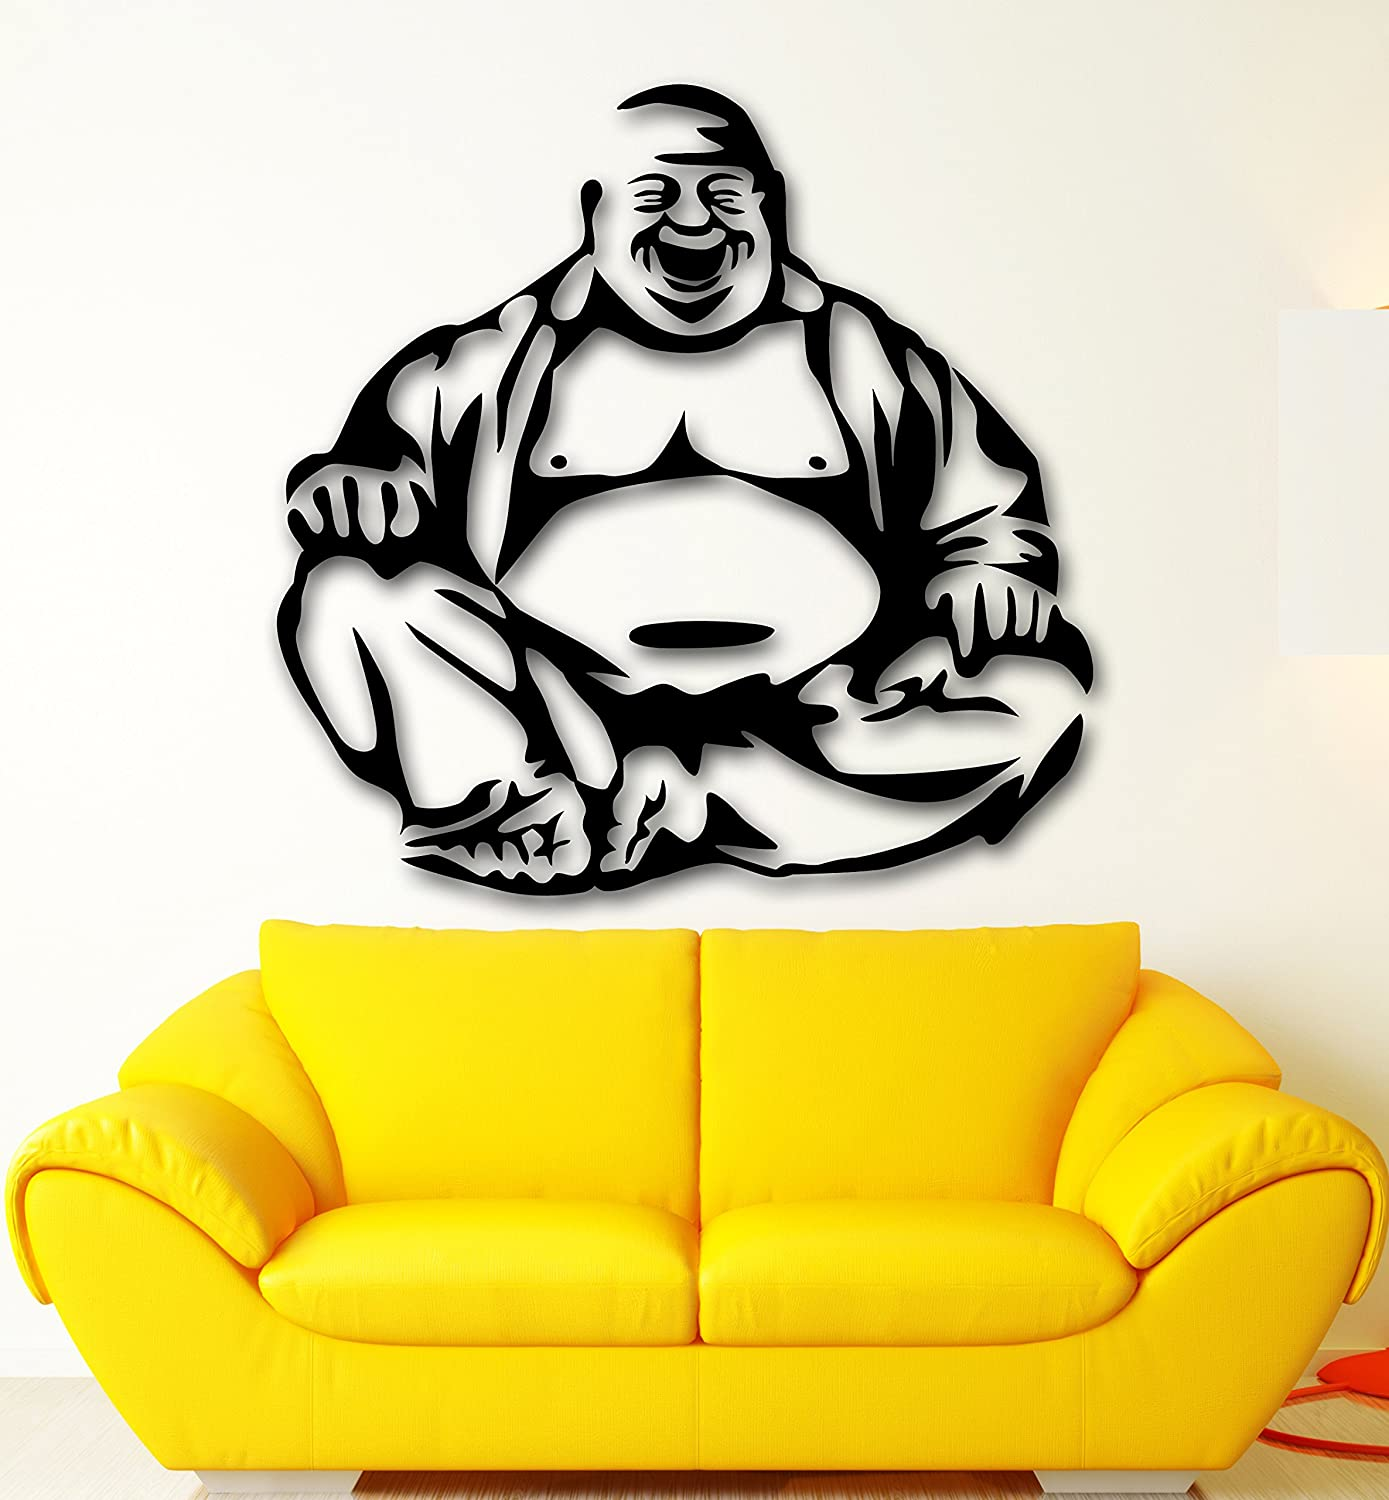 amazon com wall sticker vinyl decal laughing buddha buddhism amazon com wall sticker vinyl decal laughing buddha buddhism religion meditation ig2094 m 22 5 in x 23 in black home kitchen